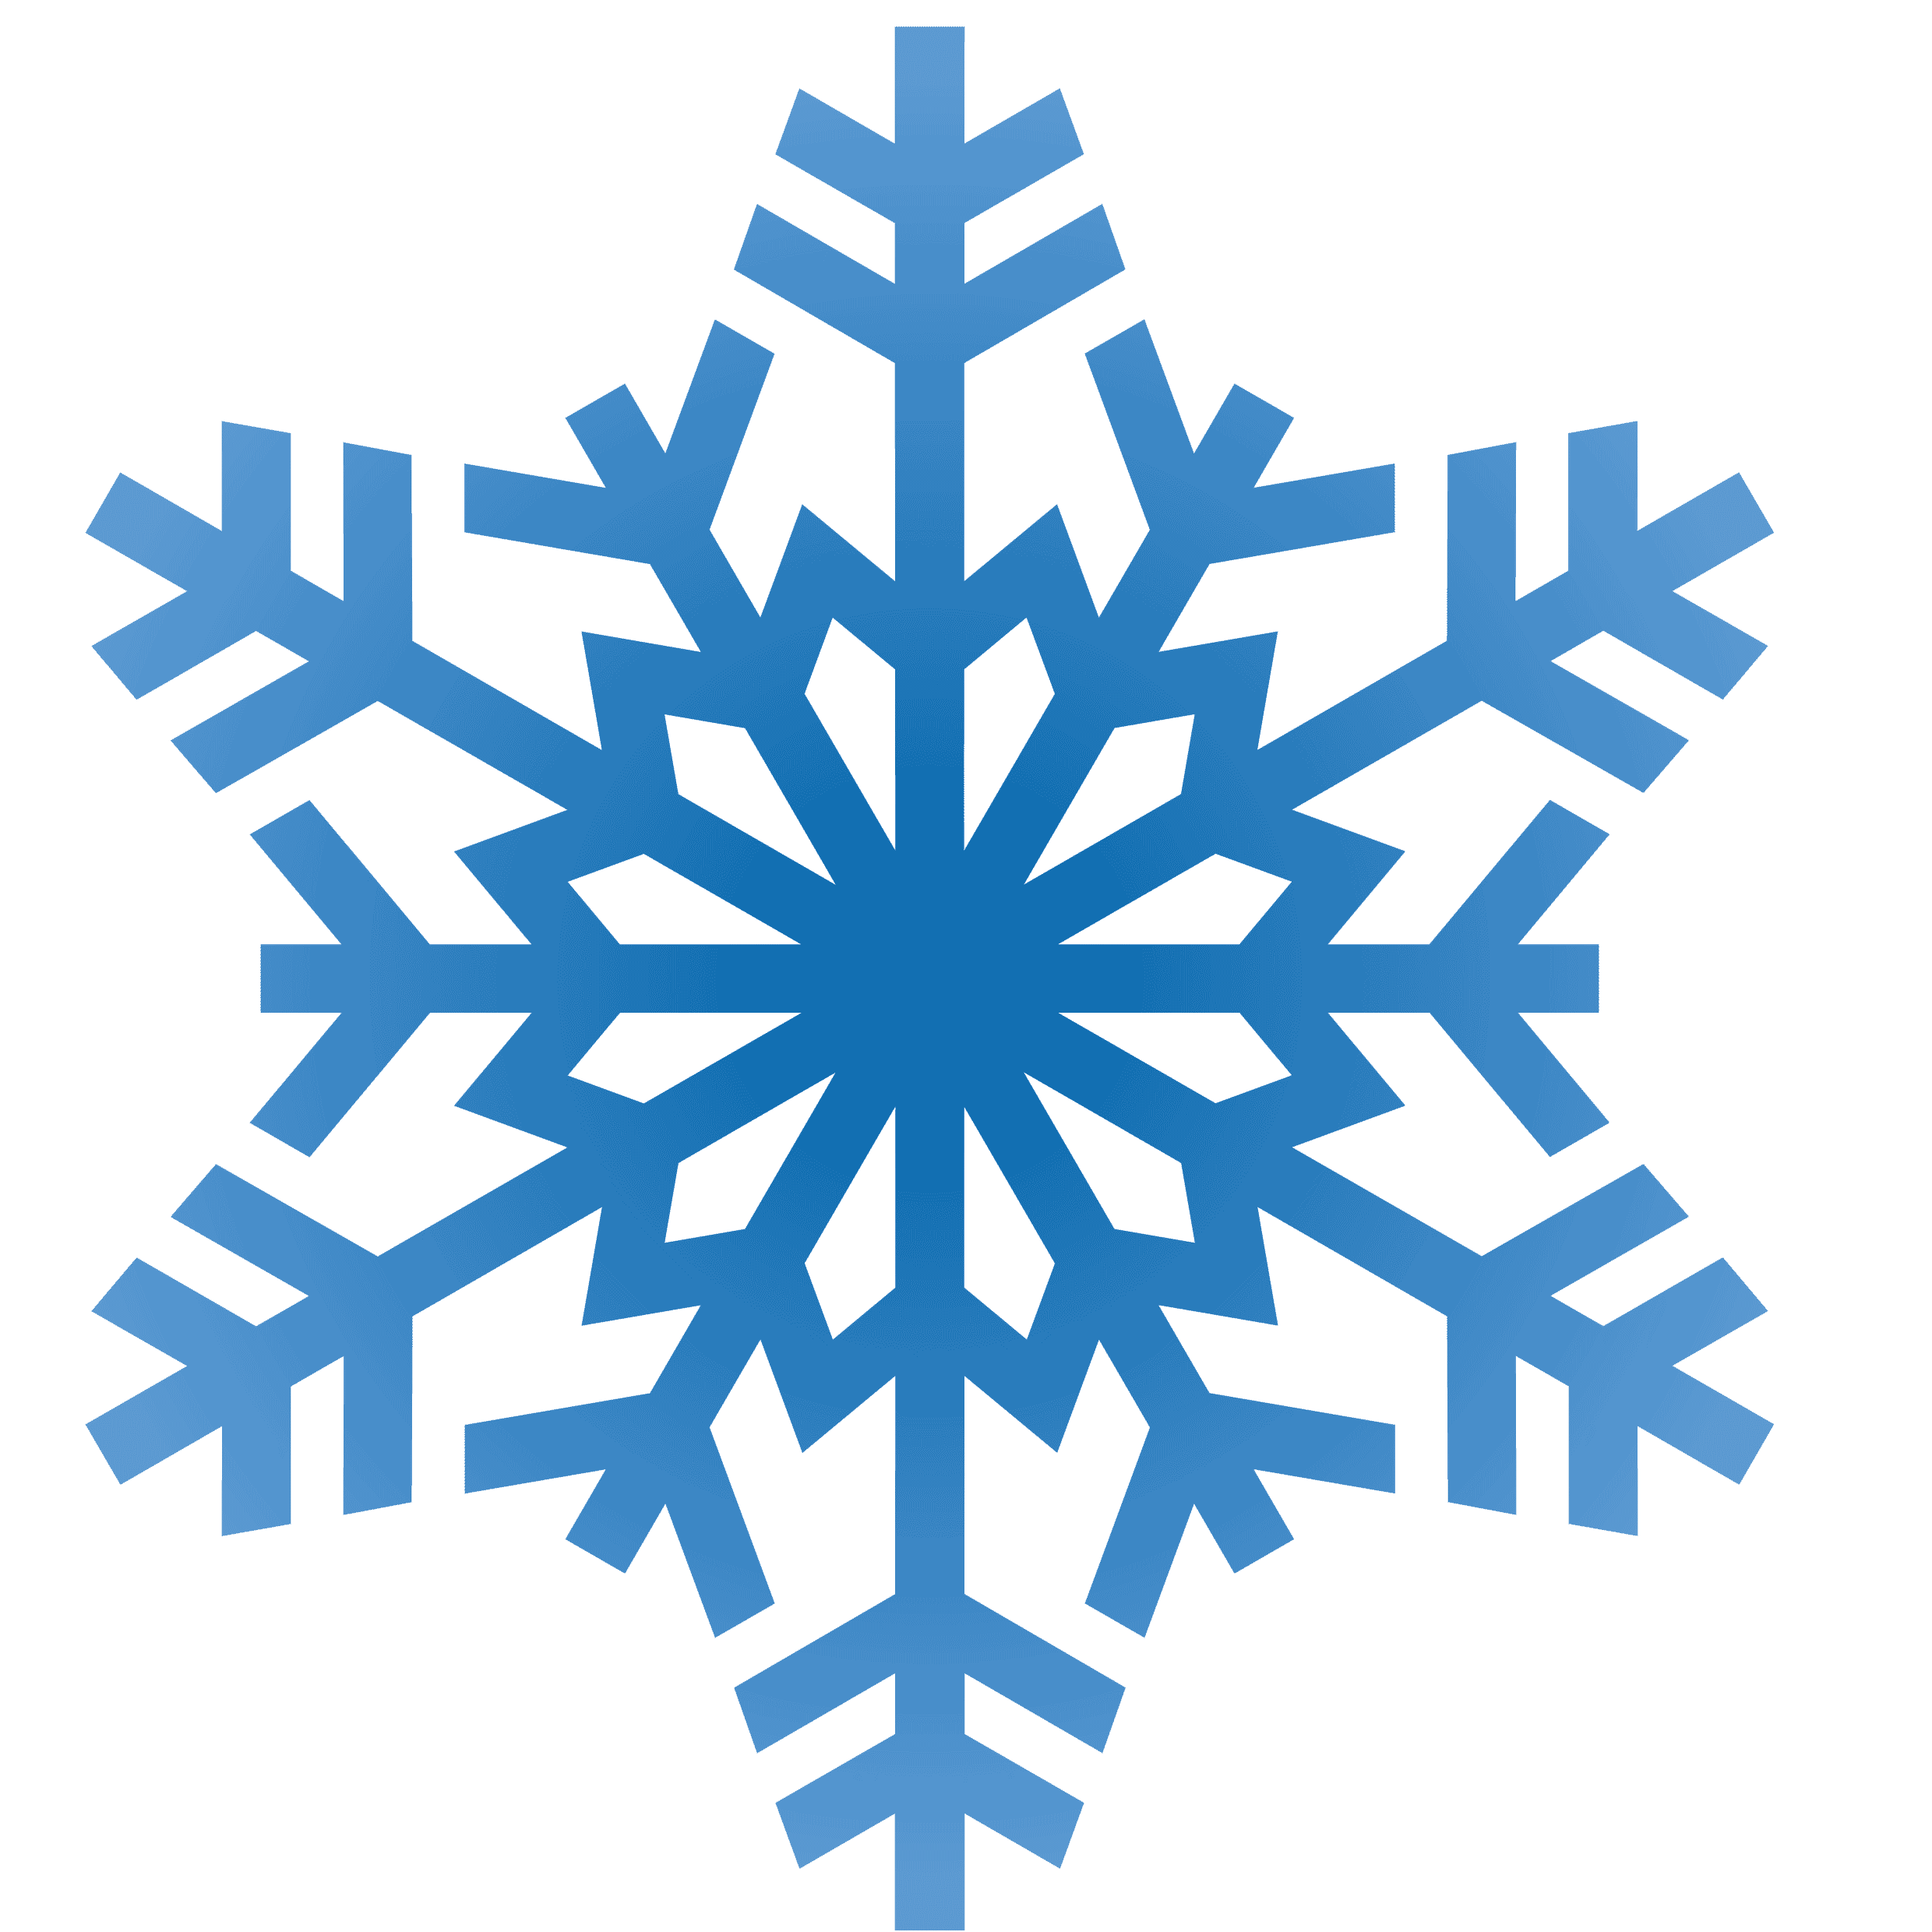 svg transparent download Snow cilpart charming ideas. Flake clipart